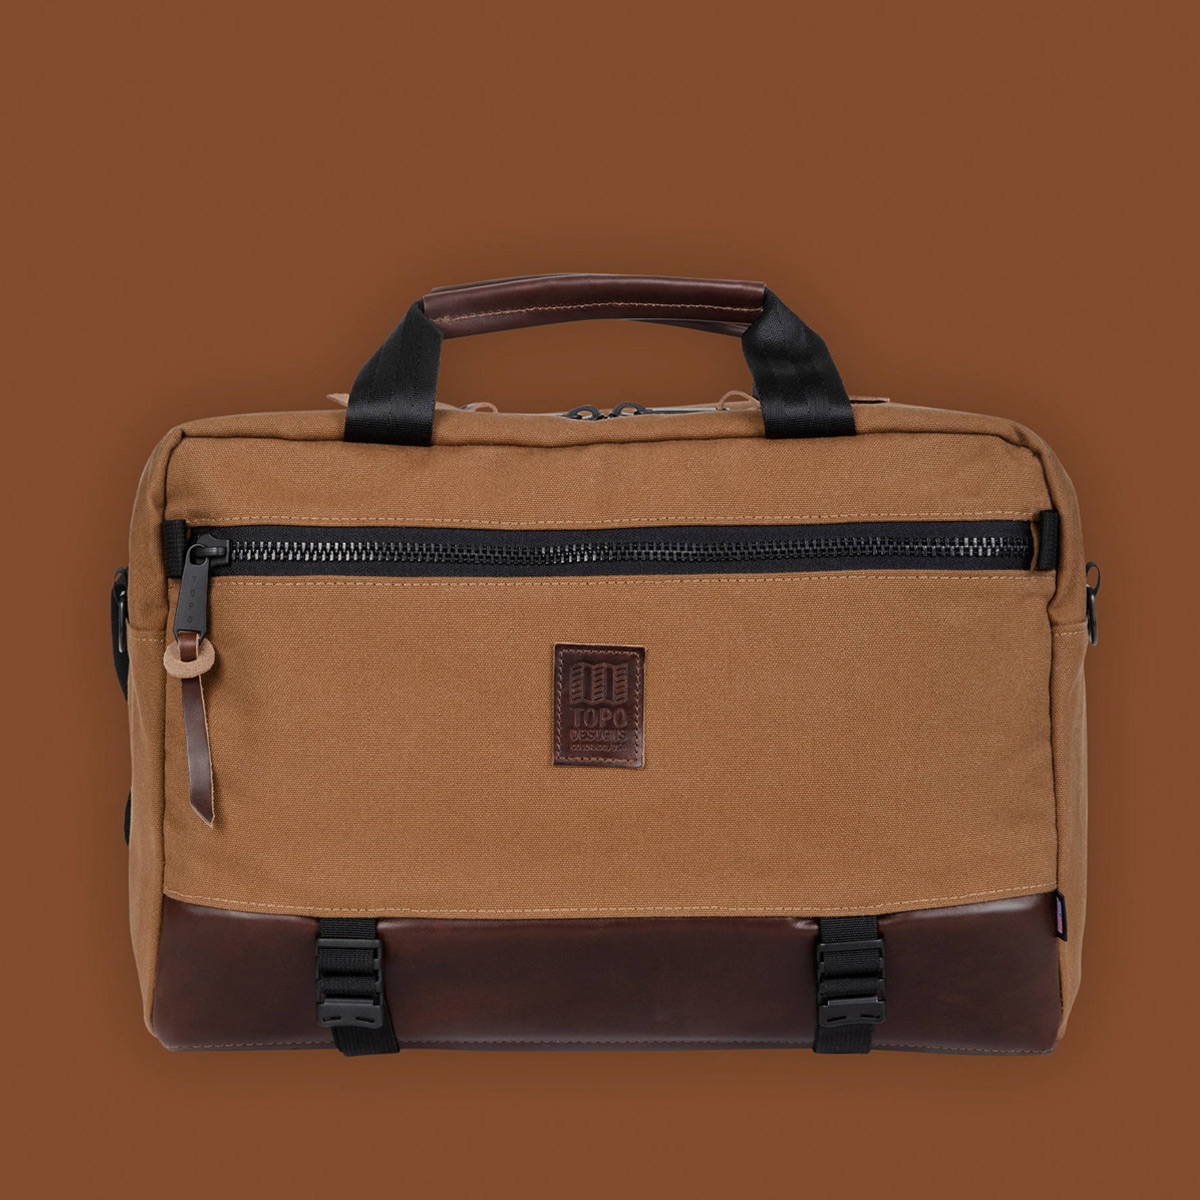 Topo Designs Commuter Briefcase Heritage Dark Khaki Canvas/Dark Brown Leather, perfect for everyday carry